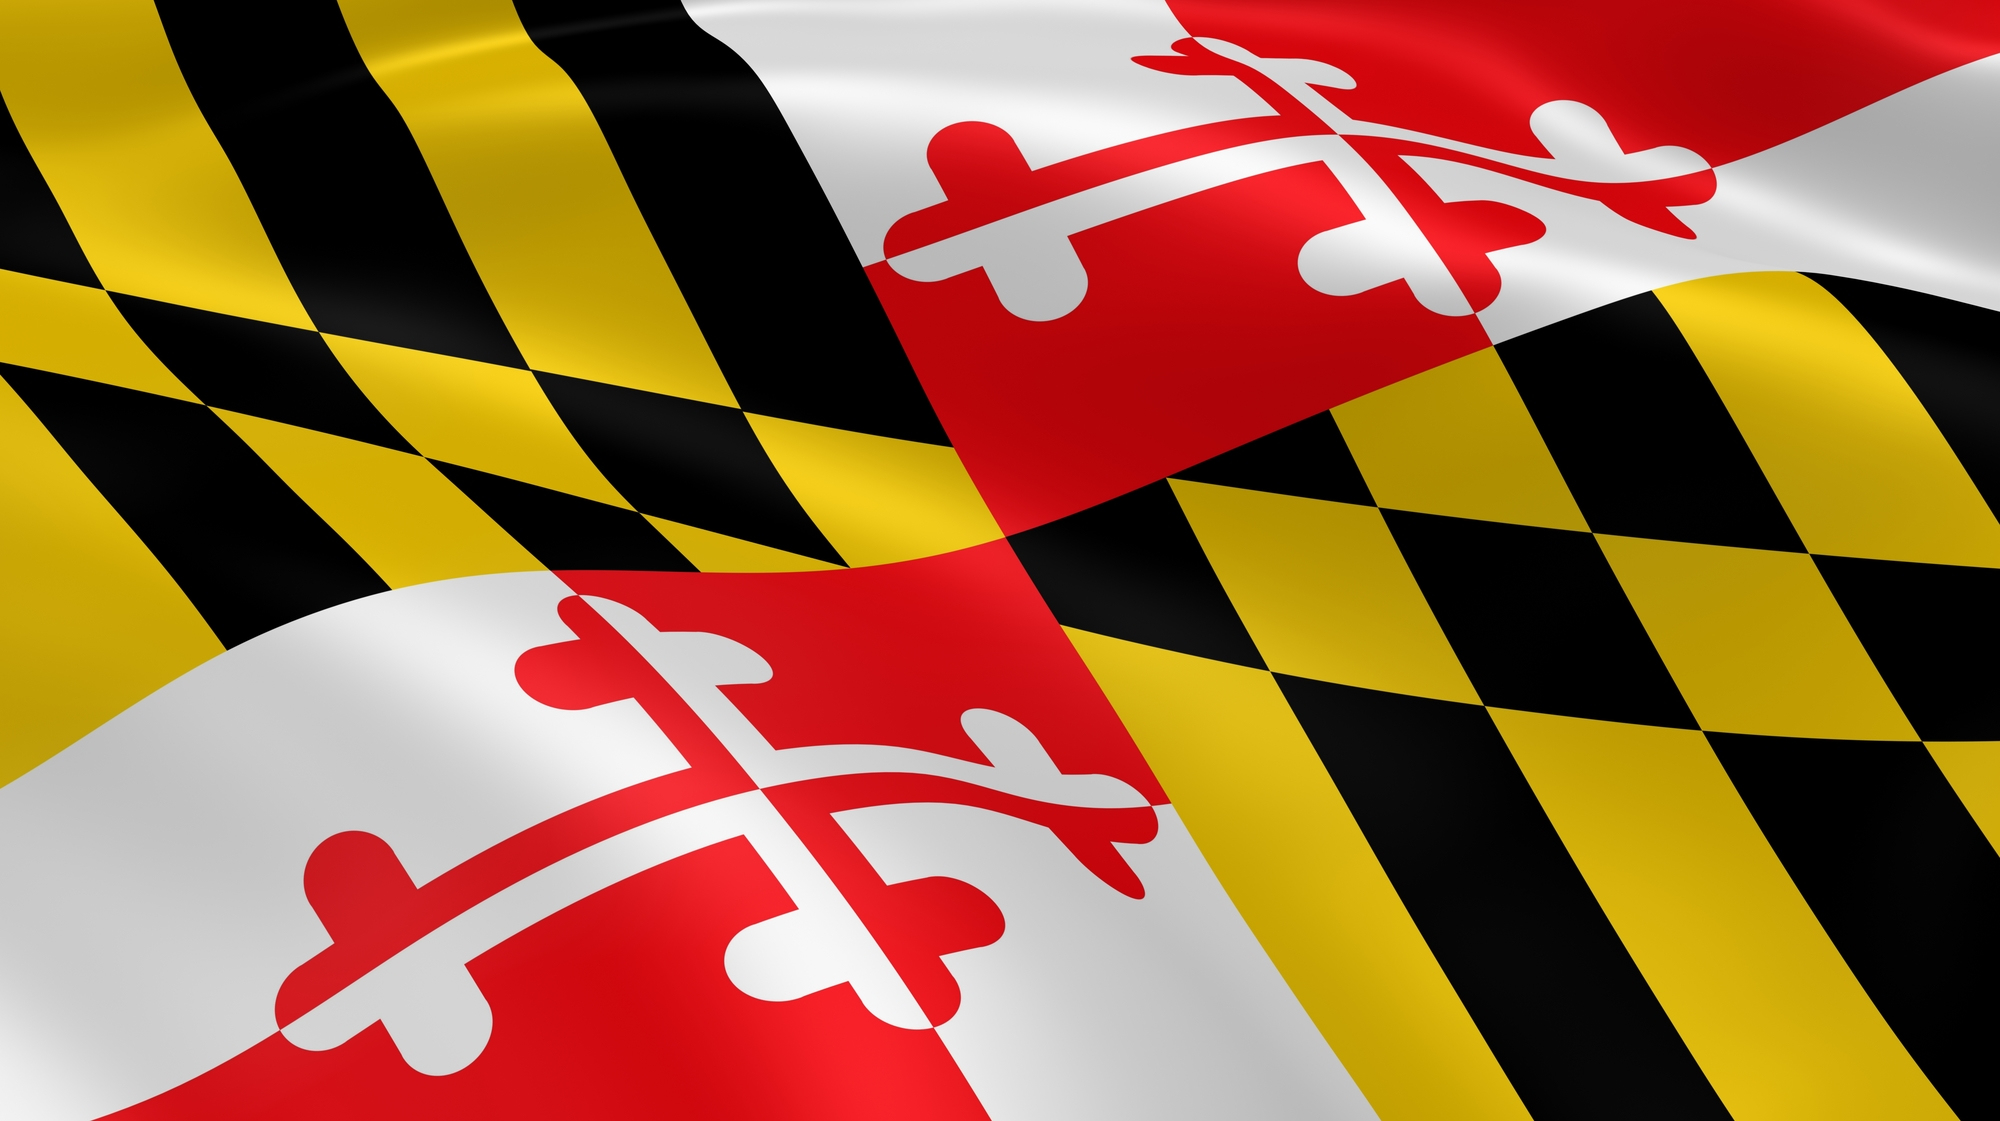 CHS Students Honored for Maryland History Day Project